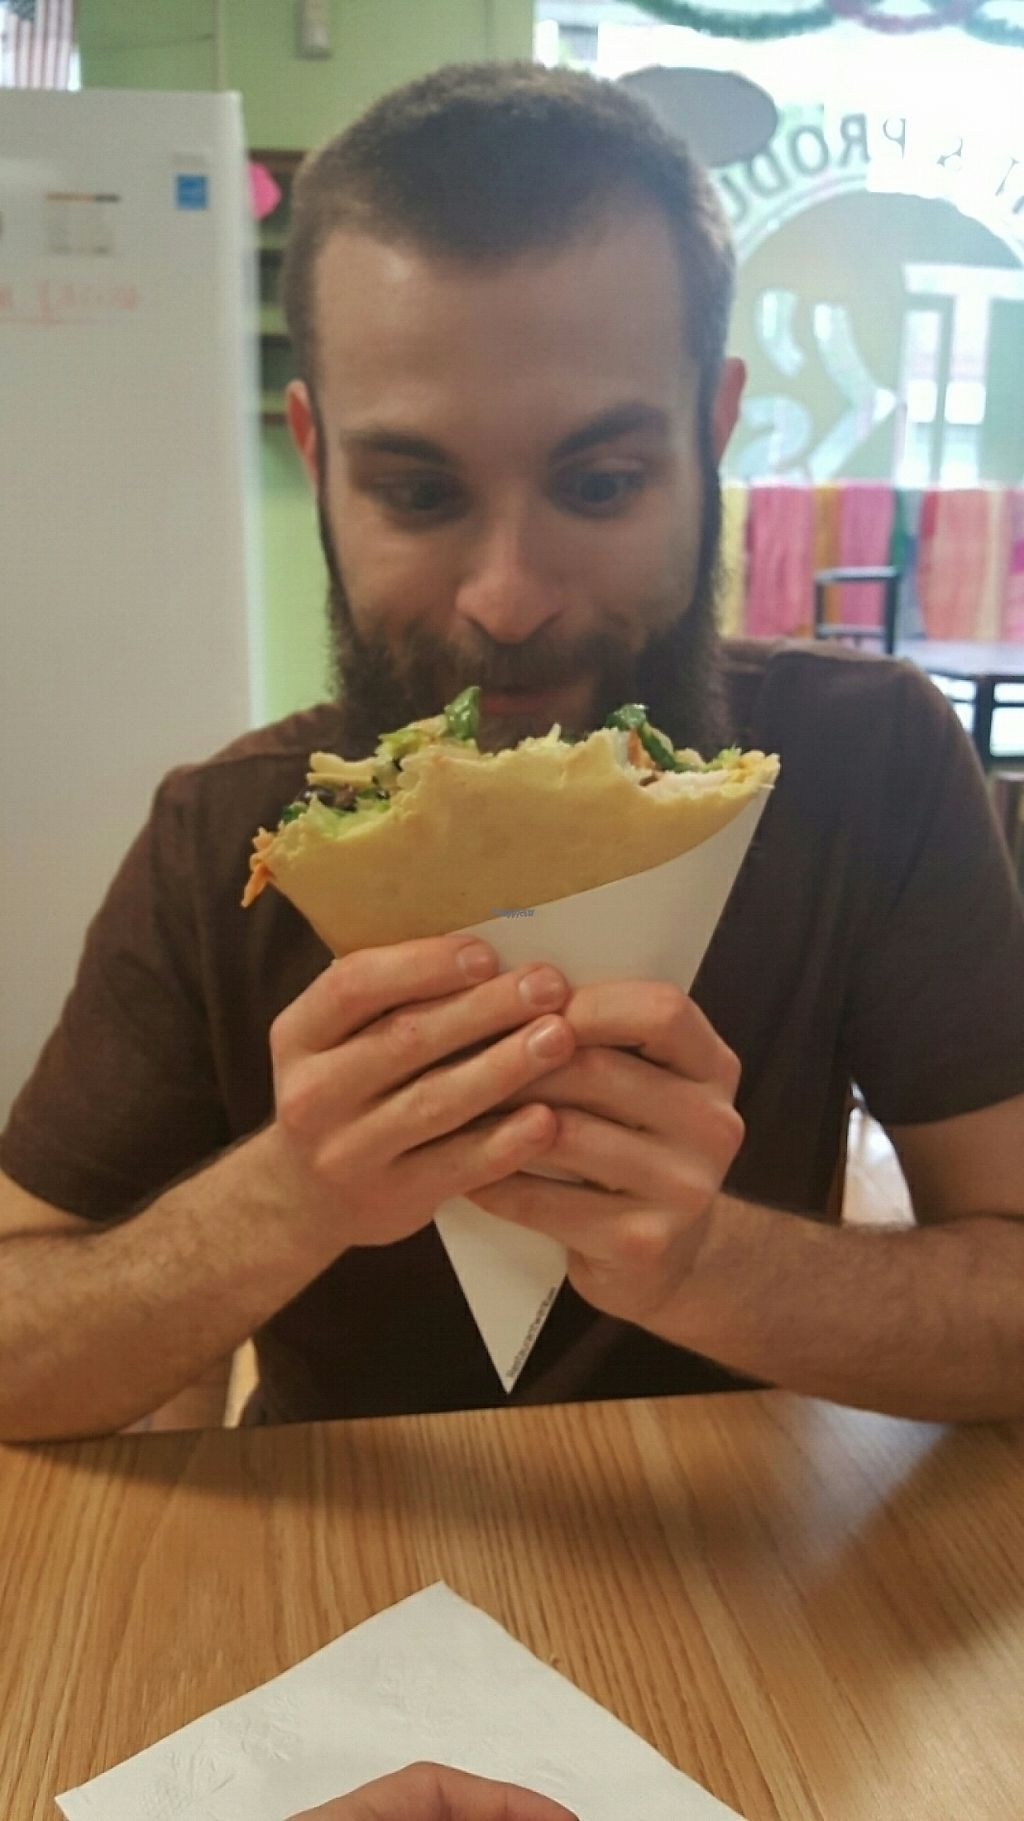 """Photo of TK's Fruits Produce Bubble Tea  by <a href=""""/members/profile/BekahLeigh"""">BekahLeigh</a> <br/>Yummy Crepes! <br/> April 21, 2017  - <a href='/contact/abuse/image/89429/250440'>Report</a>"""